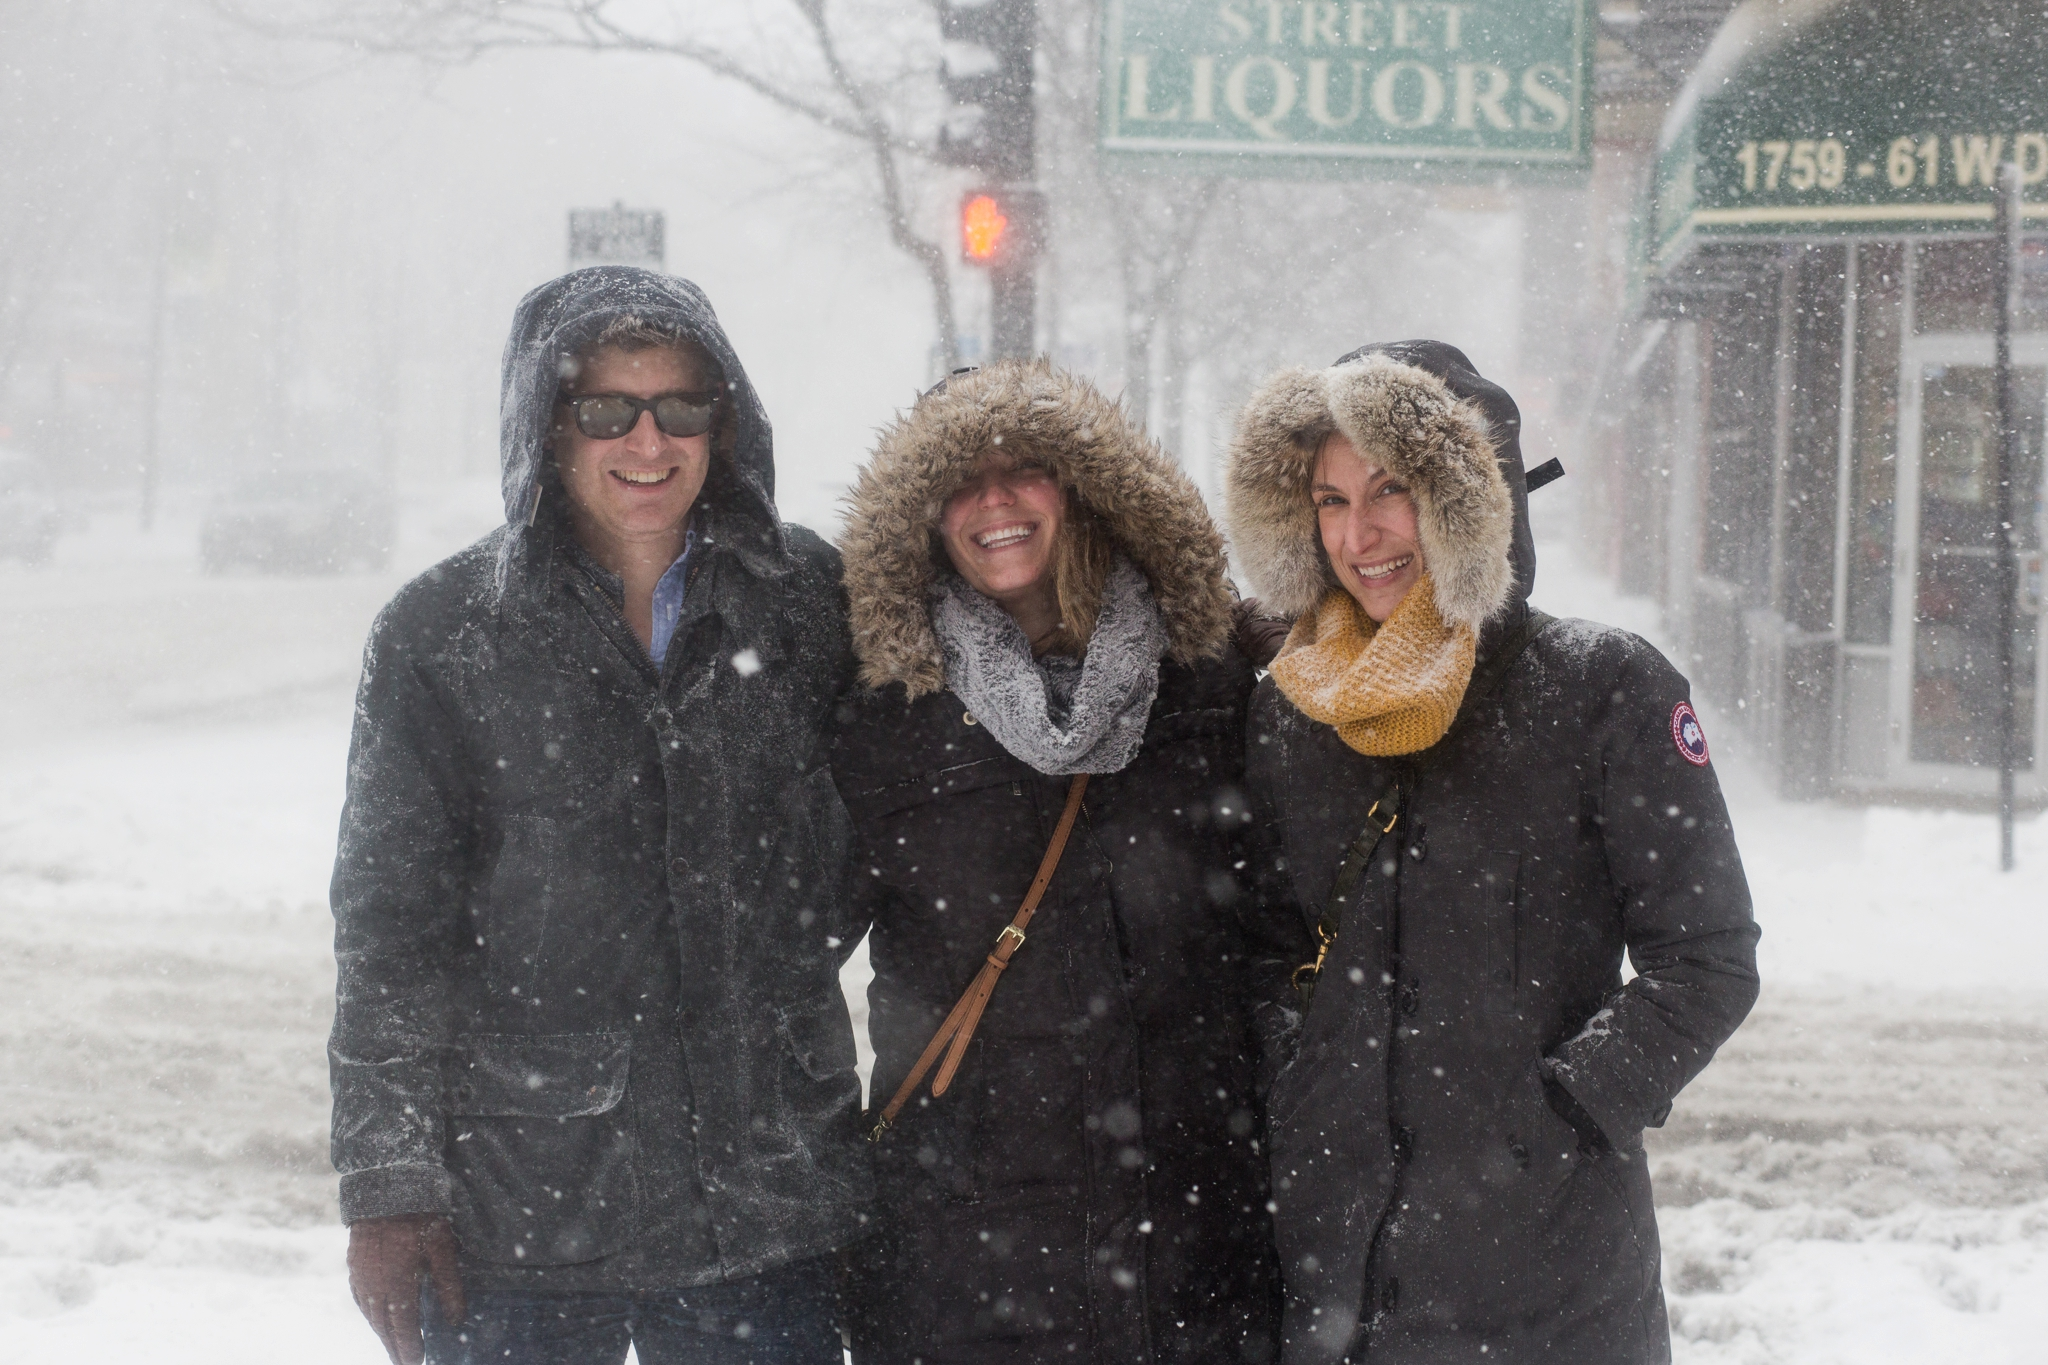 Doug, Amy and Mari braved the cold for Lunch on W. Division Street.